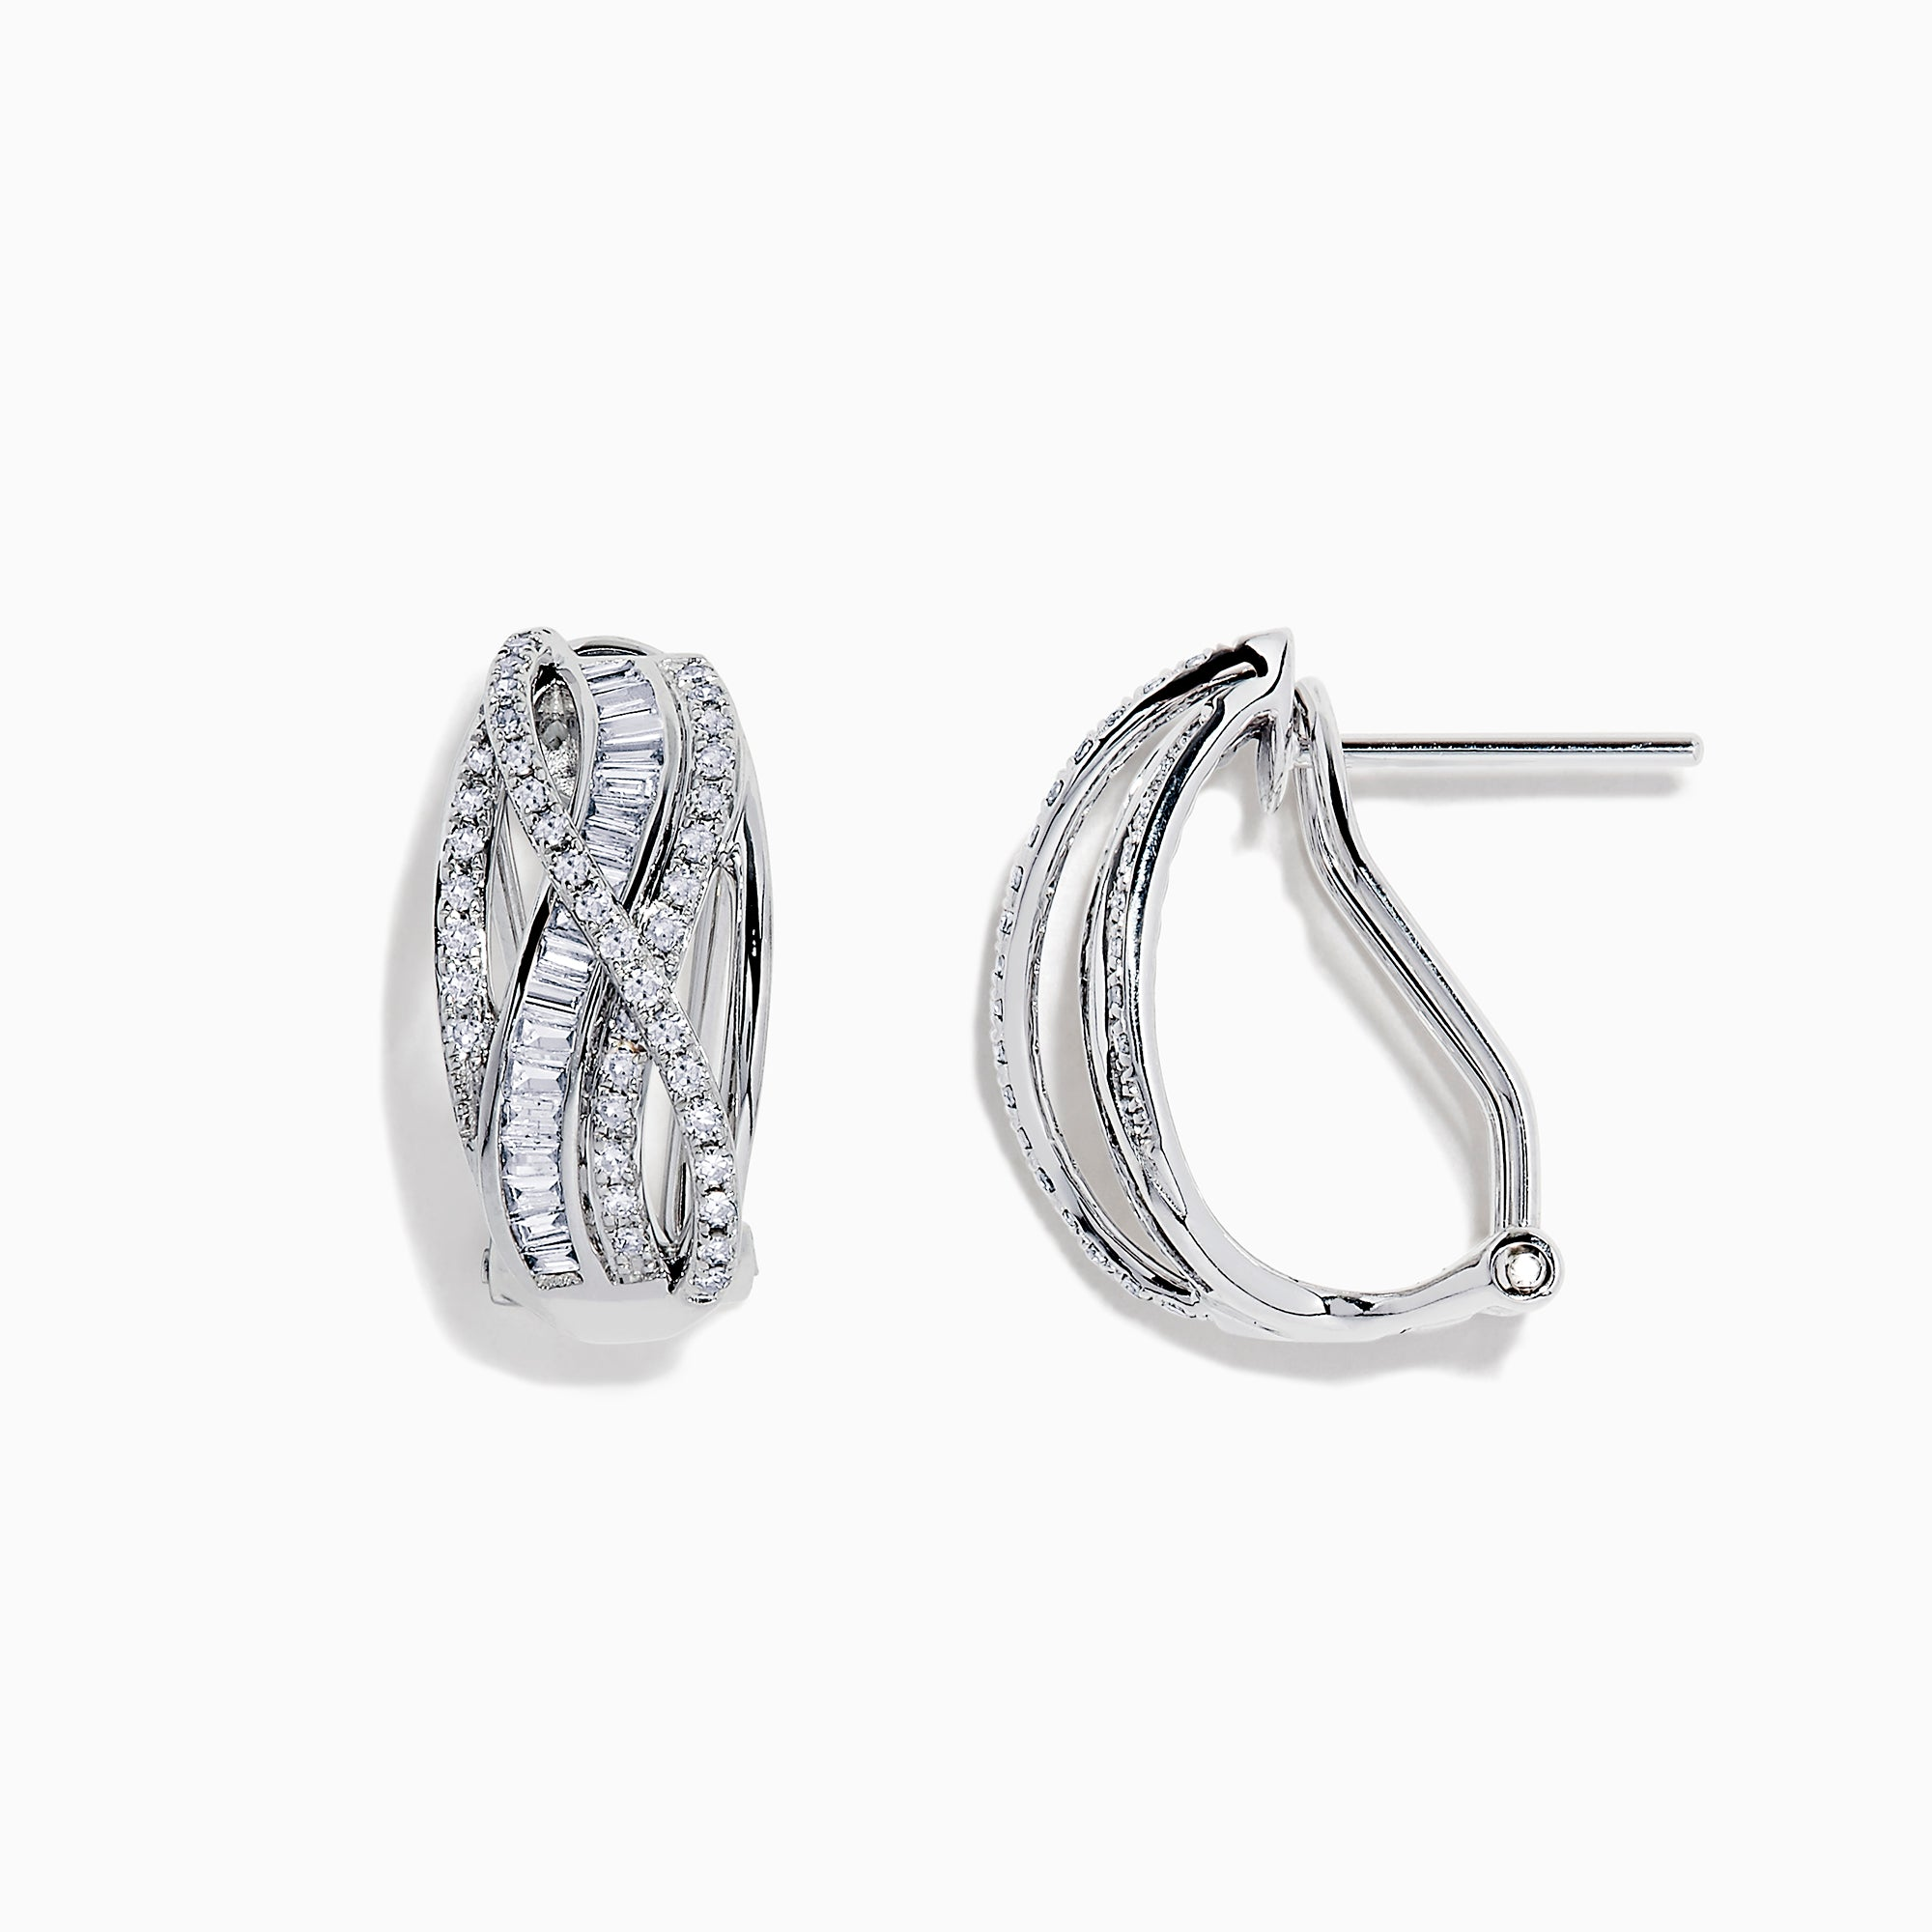 Effy Classique 14K White Gold Diamond Cross Over Earrings, 0.52 TCW